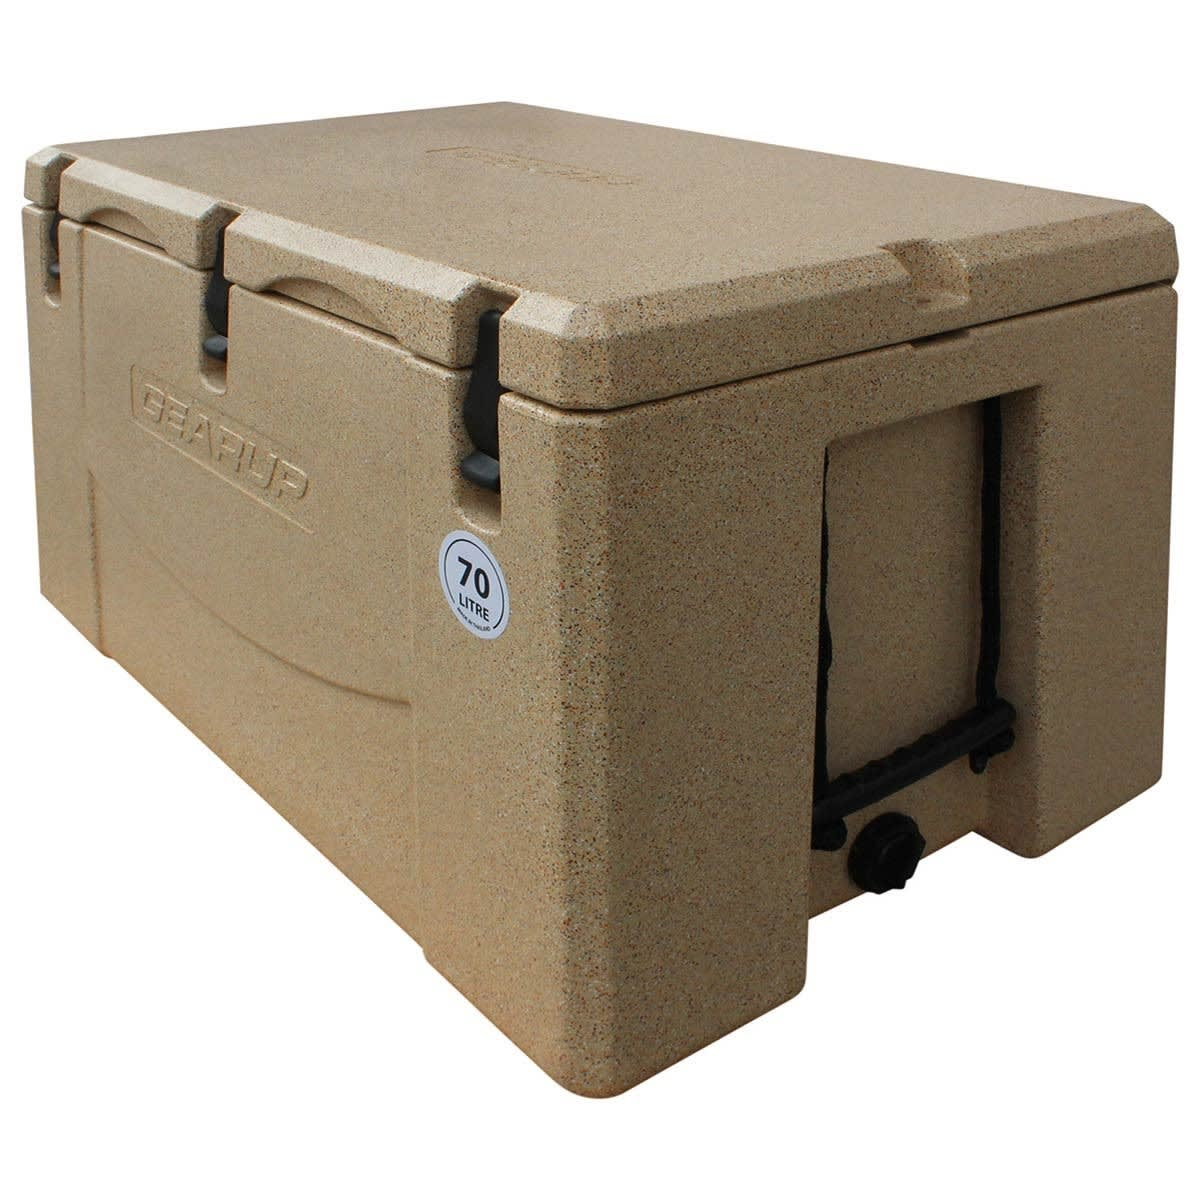 Gear Up 70L Cooler Box